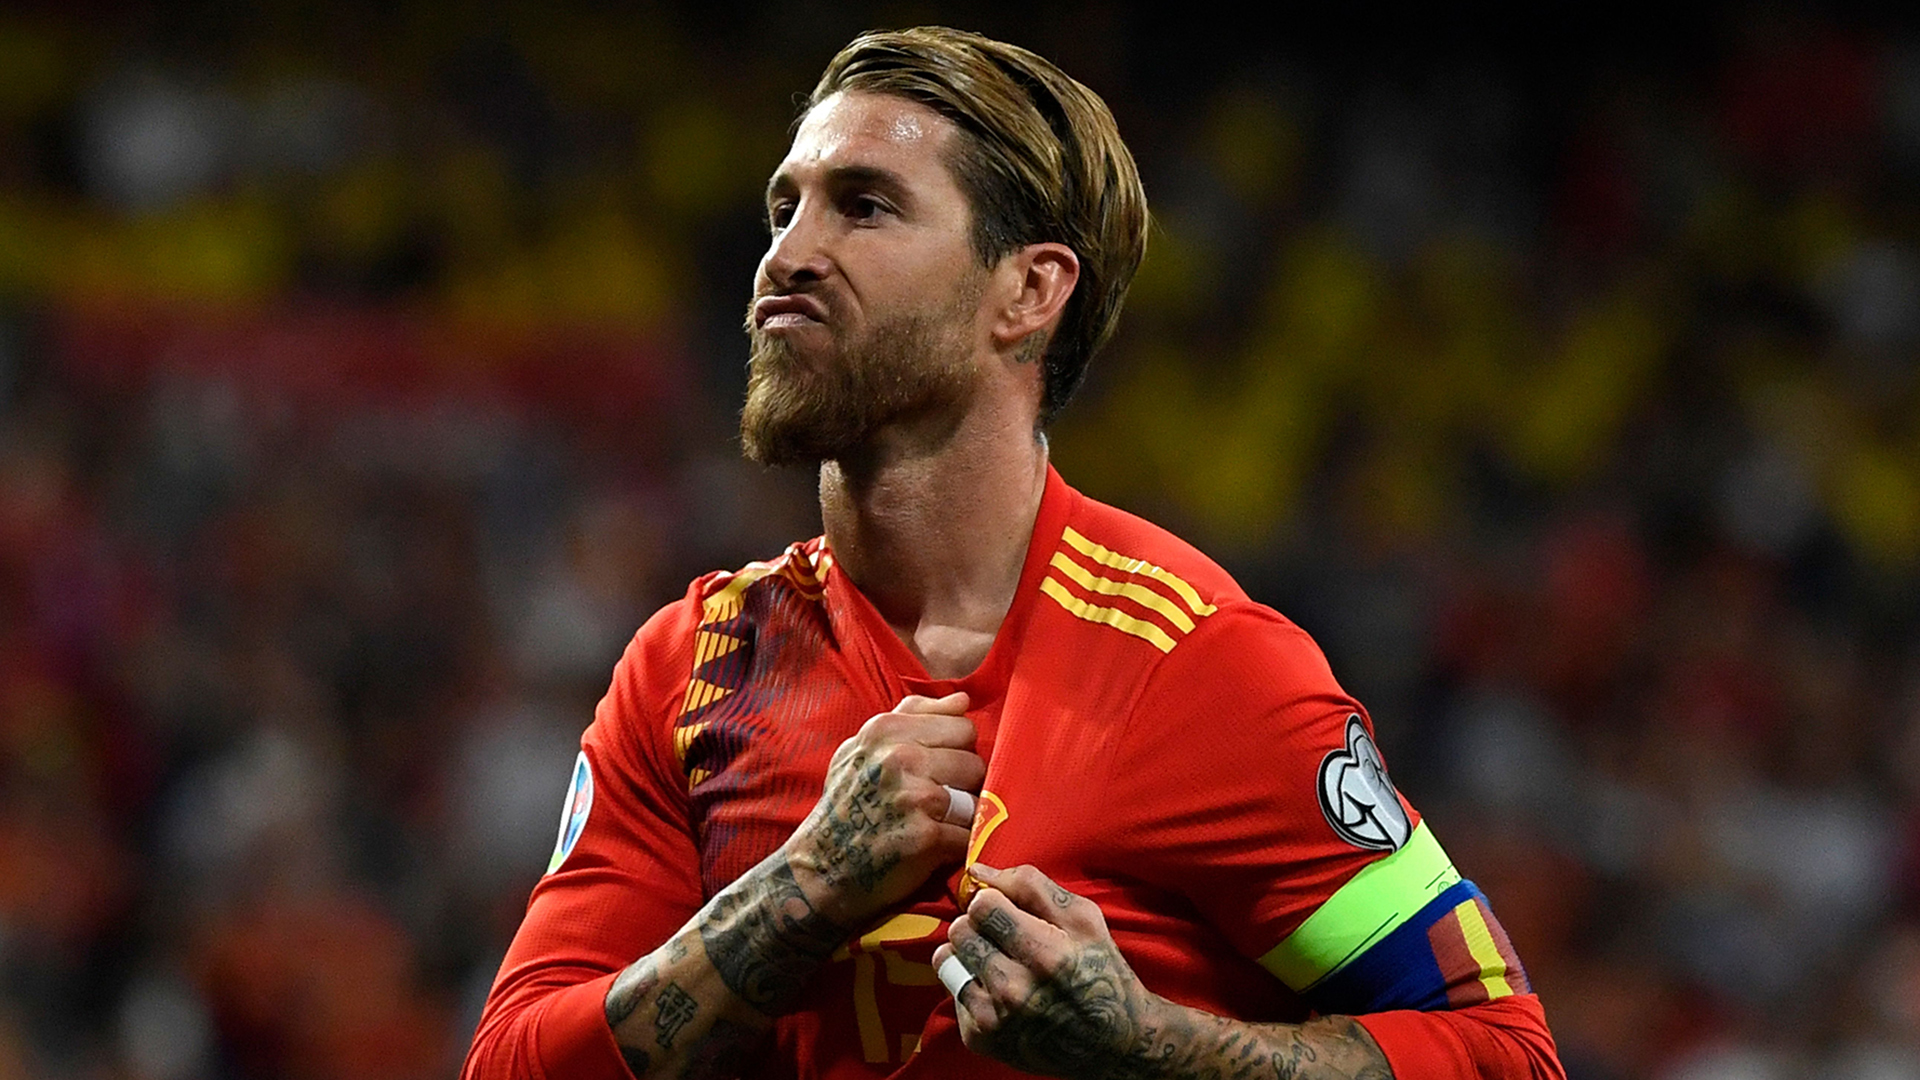 What Sergio Ramos said after becoming Spain's most capped player